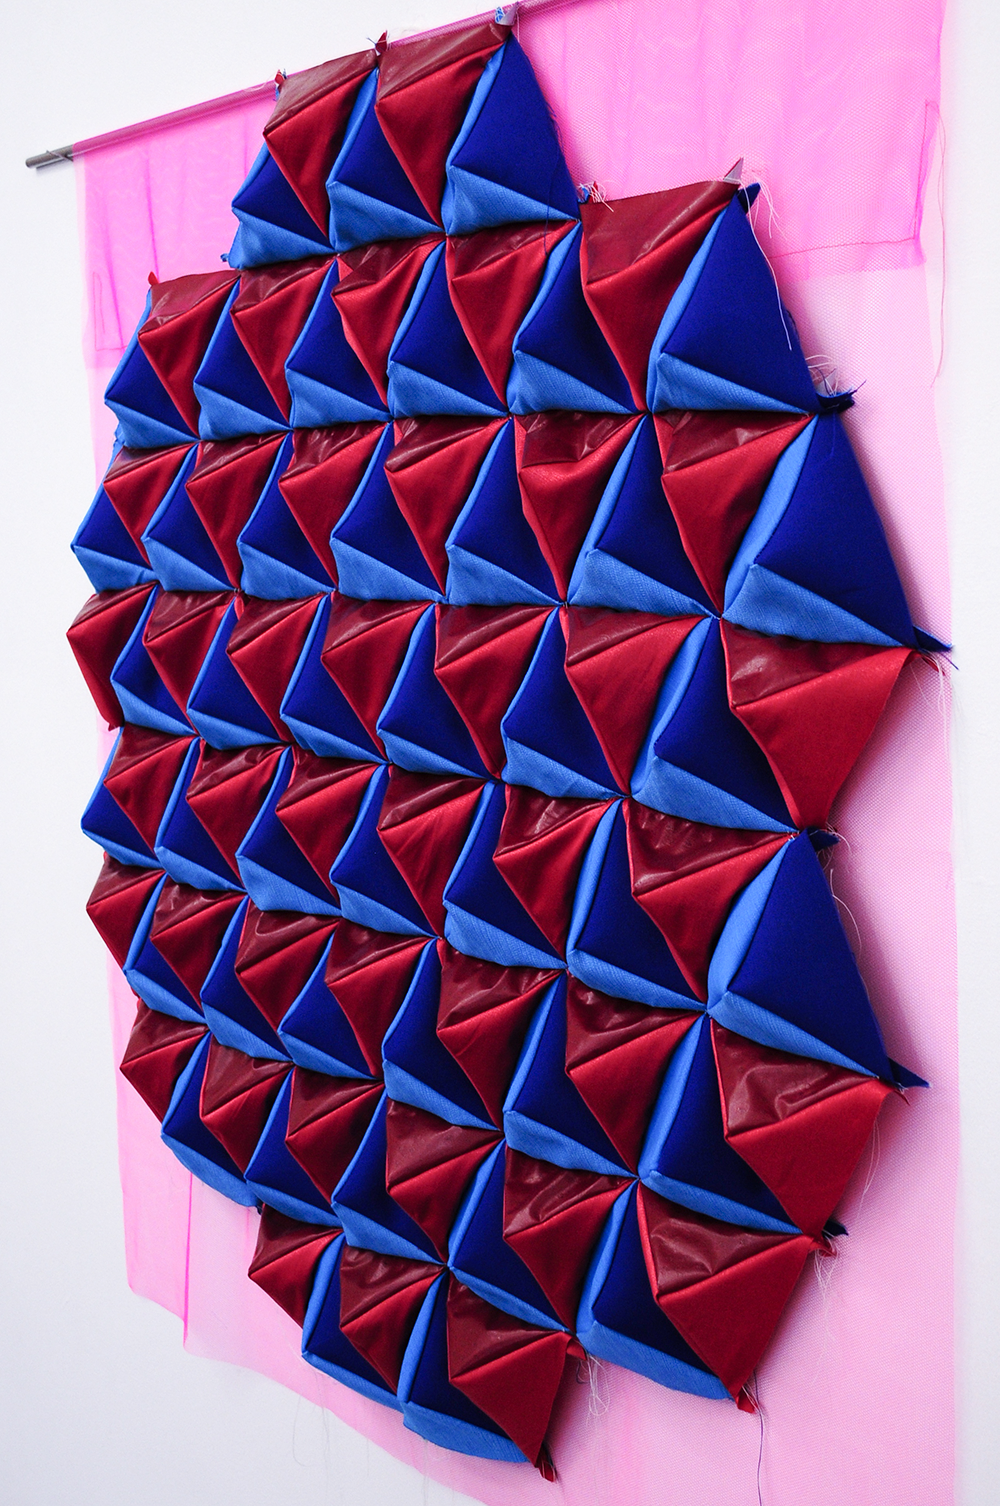 THE MENDING OF A MILLION SCATTERED PIECES TRIANGLES 2015 Patchwork PVC Fabric Polyester Tulle 140 X Cm